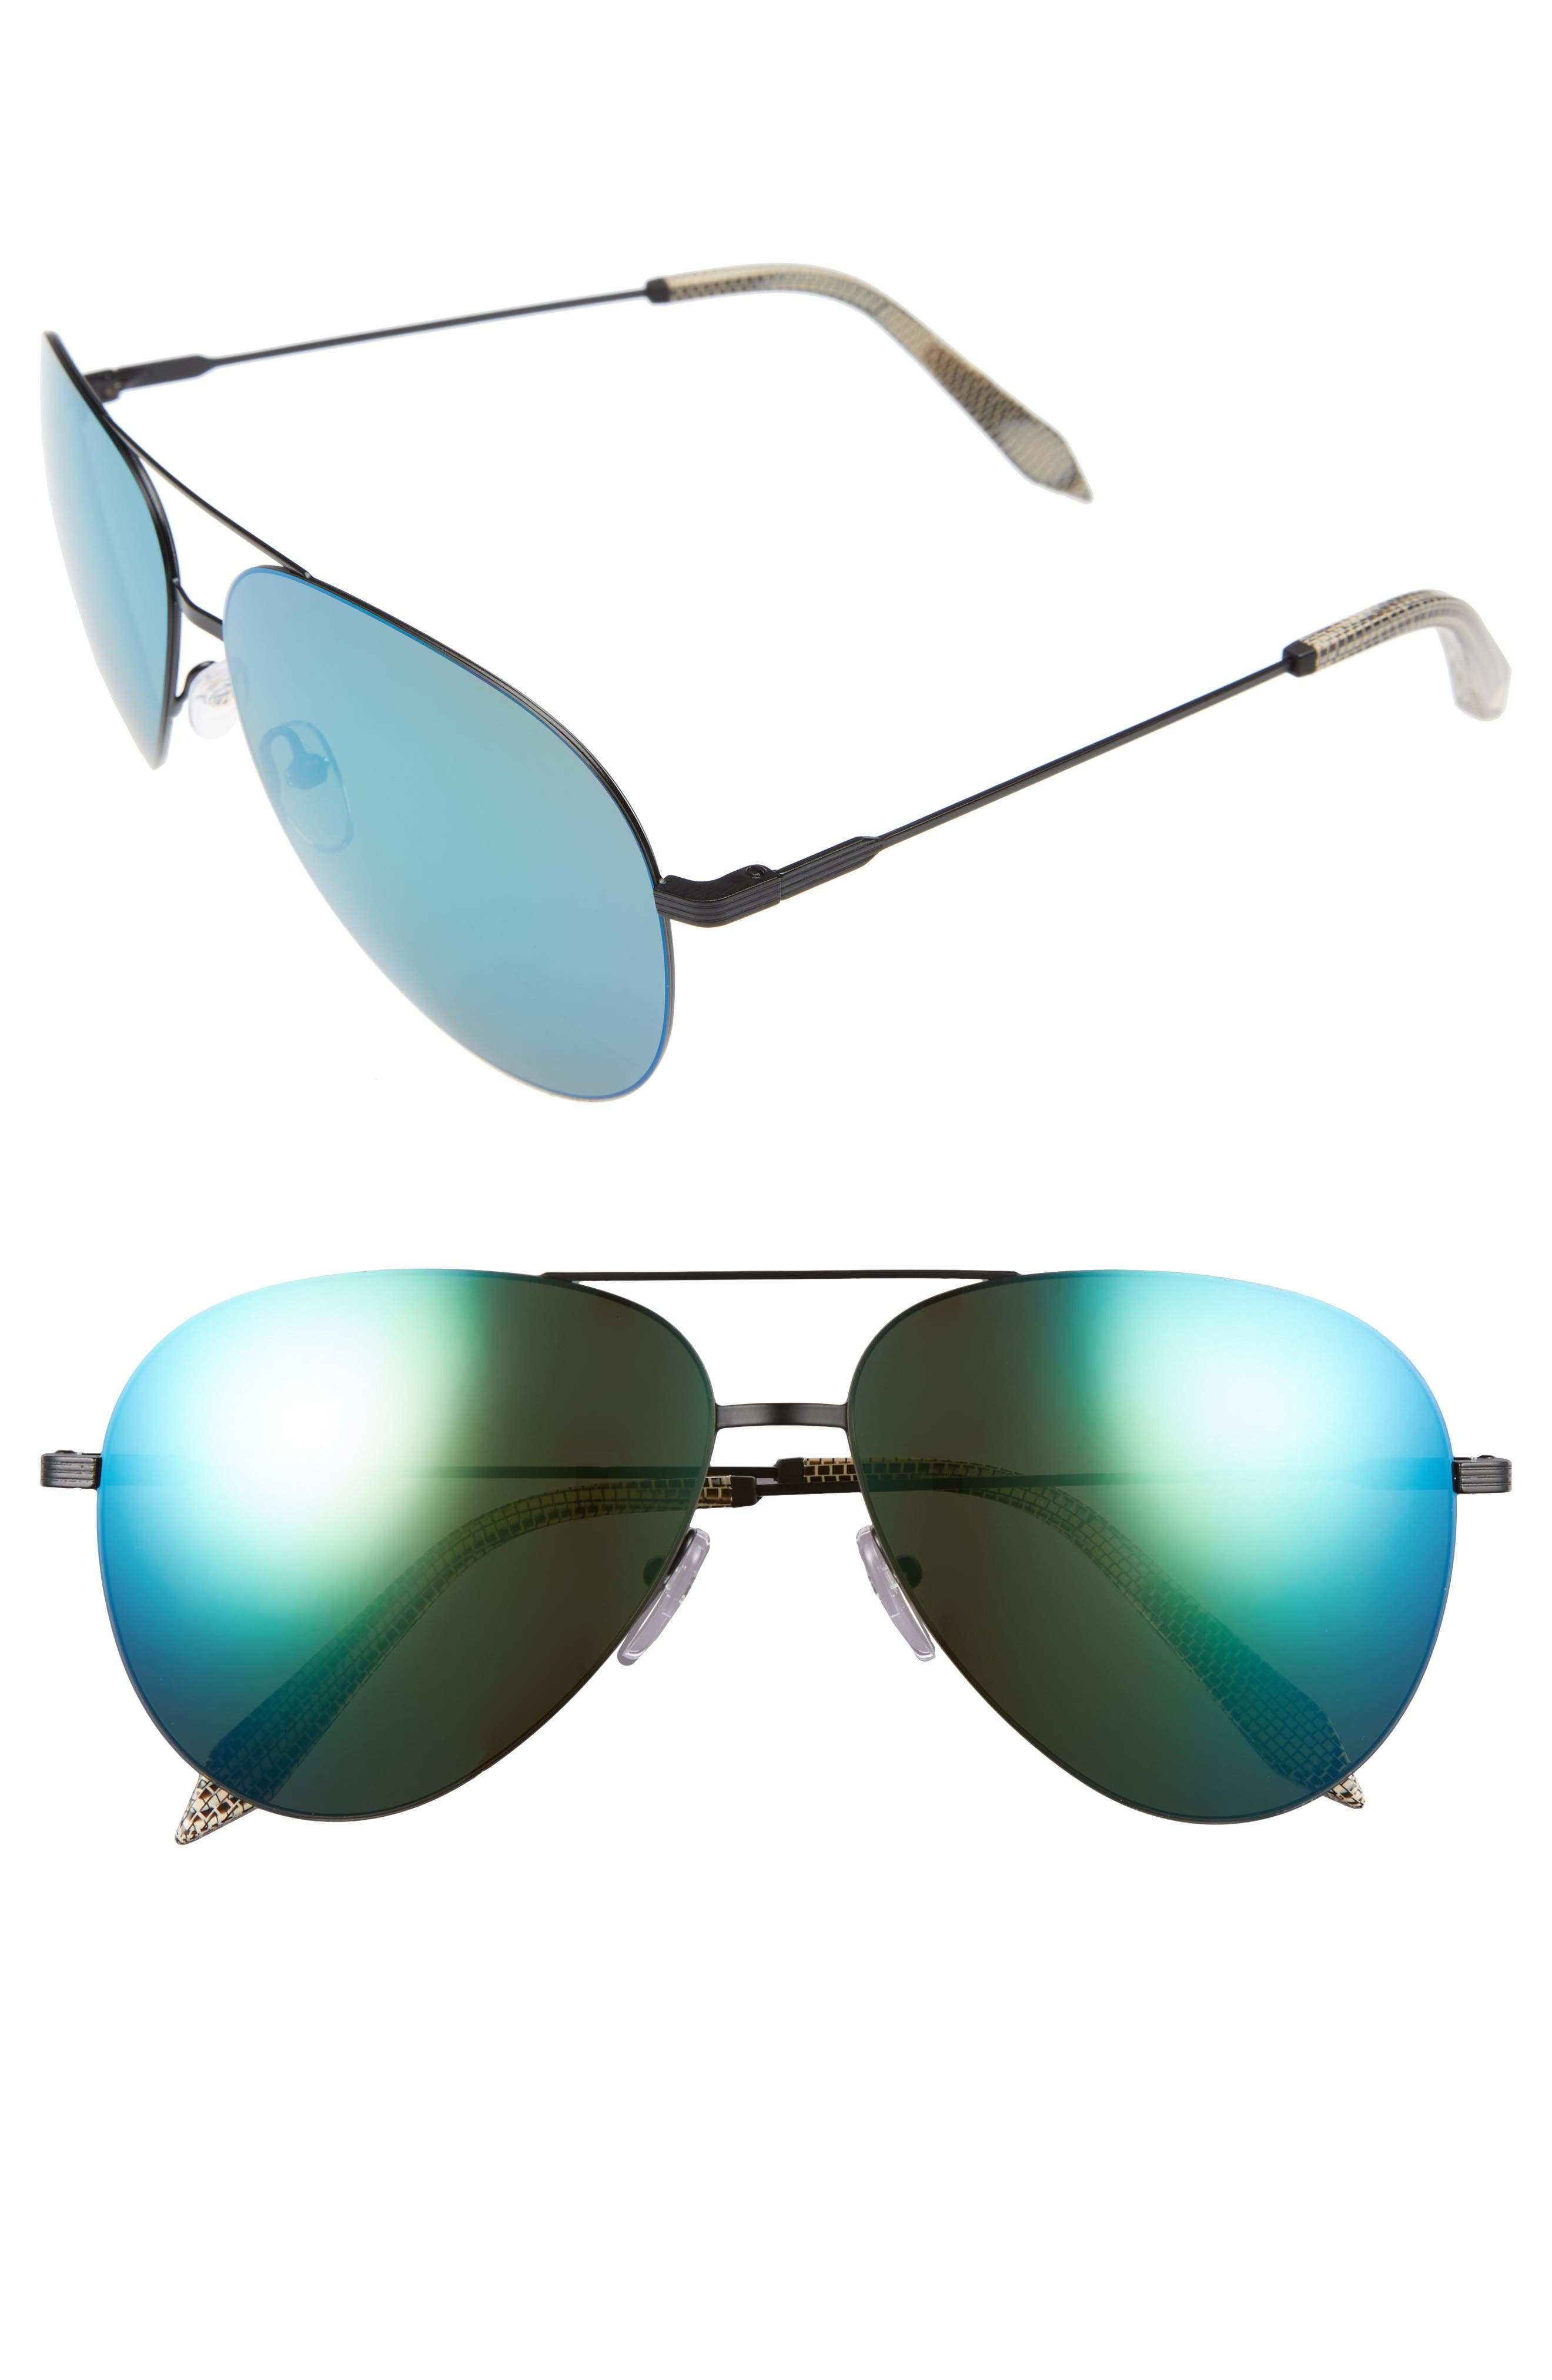 Classic Victoria Feather 62mm Aviator Sunglasses,                             Main thumbnail 1, color,                             BLACK/ TURQUOISE MIRROR